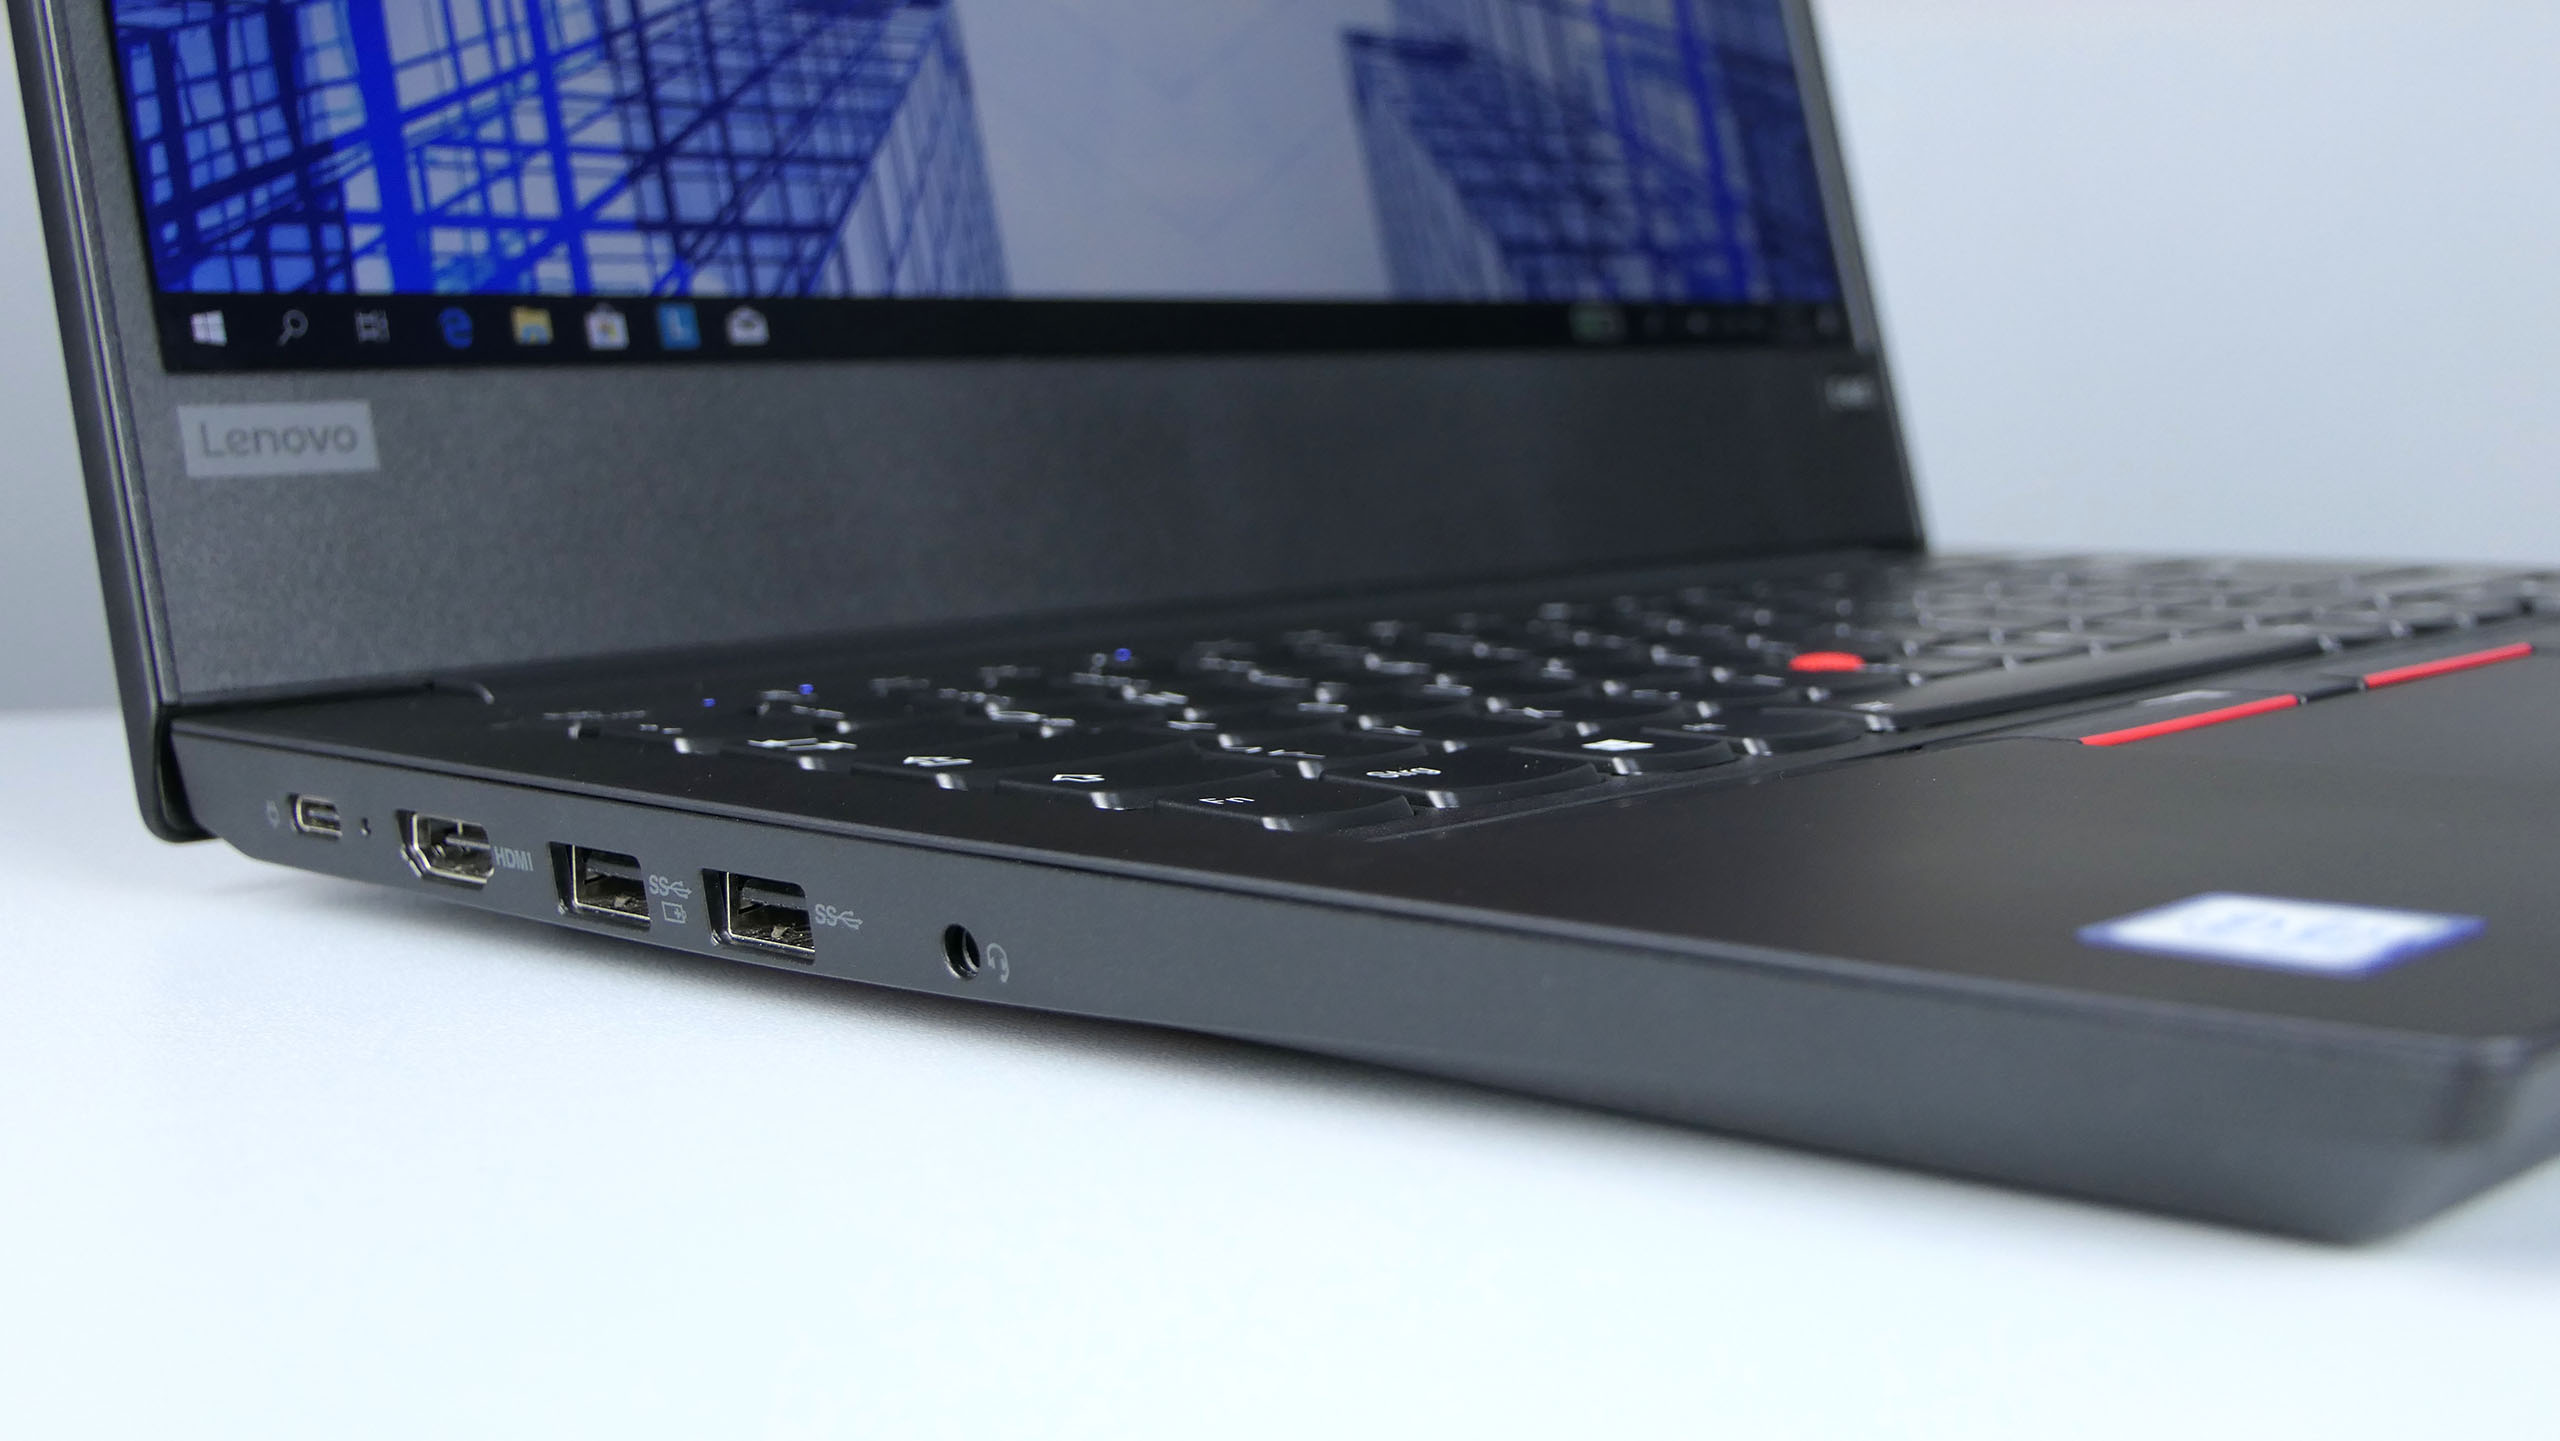 Lenovo ThinkPad E490 - porty po lewej stronie: USB typu C, HDMI, 2x USB 3.0, audio in/out